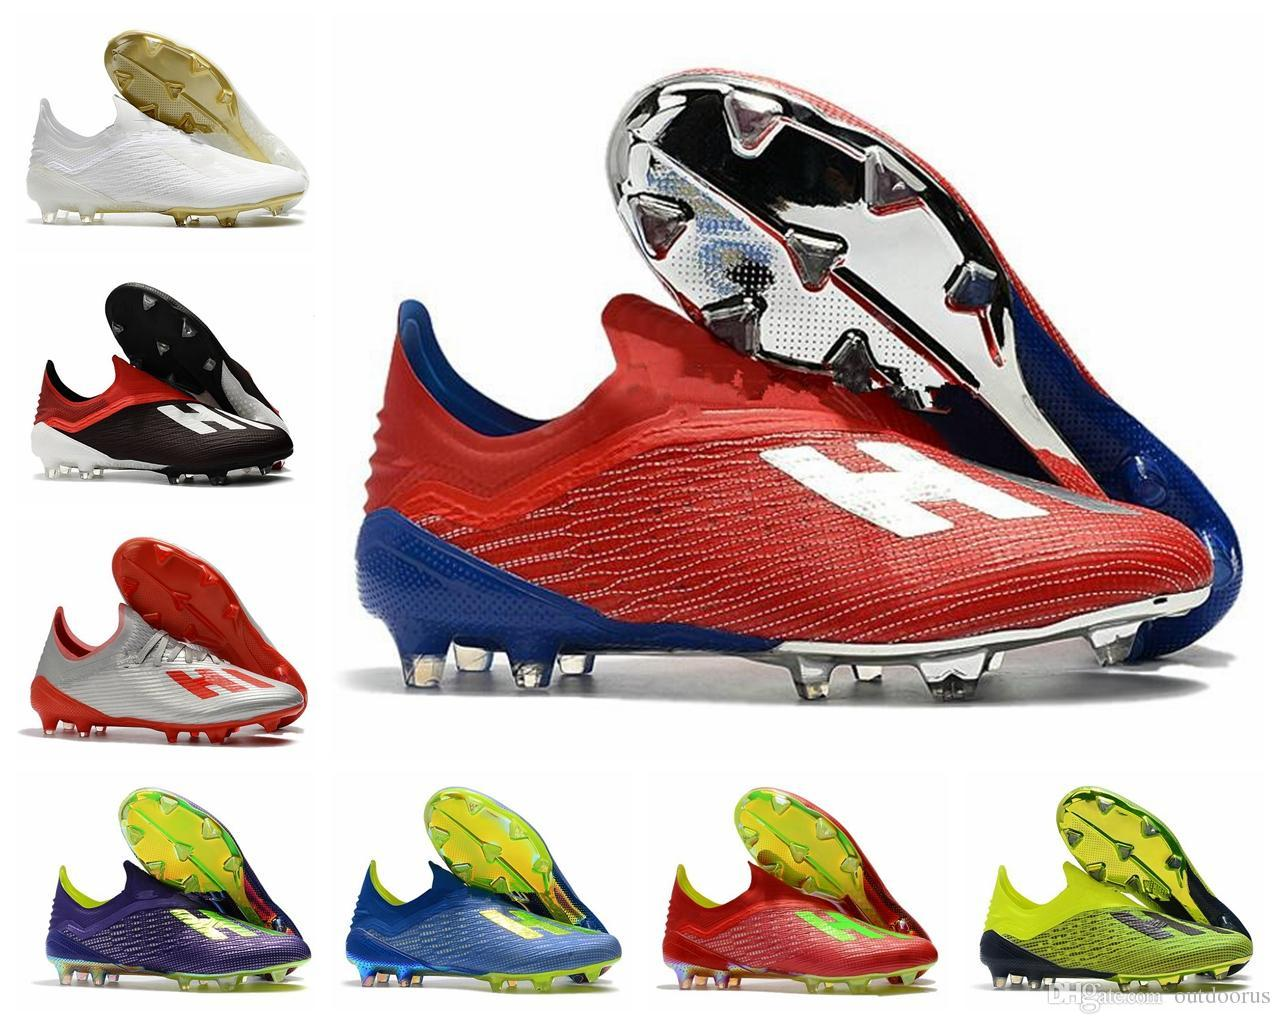 2019 X 19+ 19.1 FG Soccer Mens Football Salah Jesus Shoes 19+x 19 18+X SKELETALWEAVE Boots Cleats